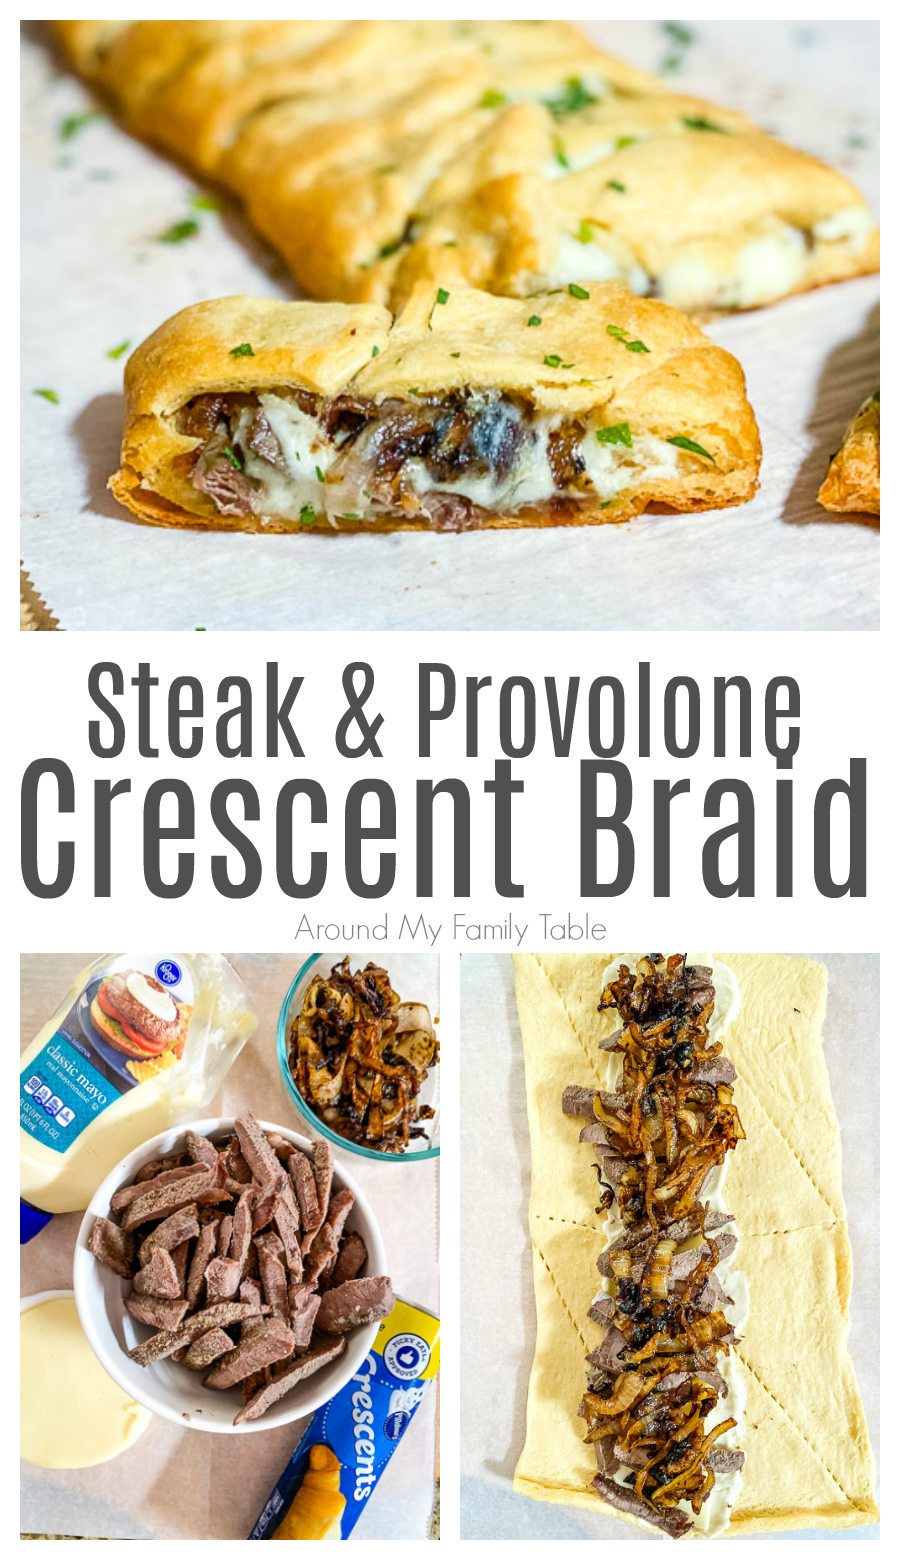 This Steak & Provolone Crescent Braid is the perfect blend of leftover steak, caramelized onions, and lots of gooey provolone that's perfect for a Sunday lunch or simple weeknight supper. It would make a great party appetizer too! via @slingmama